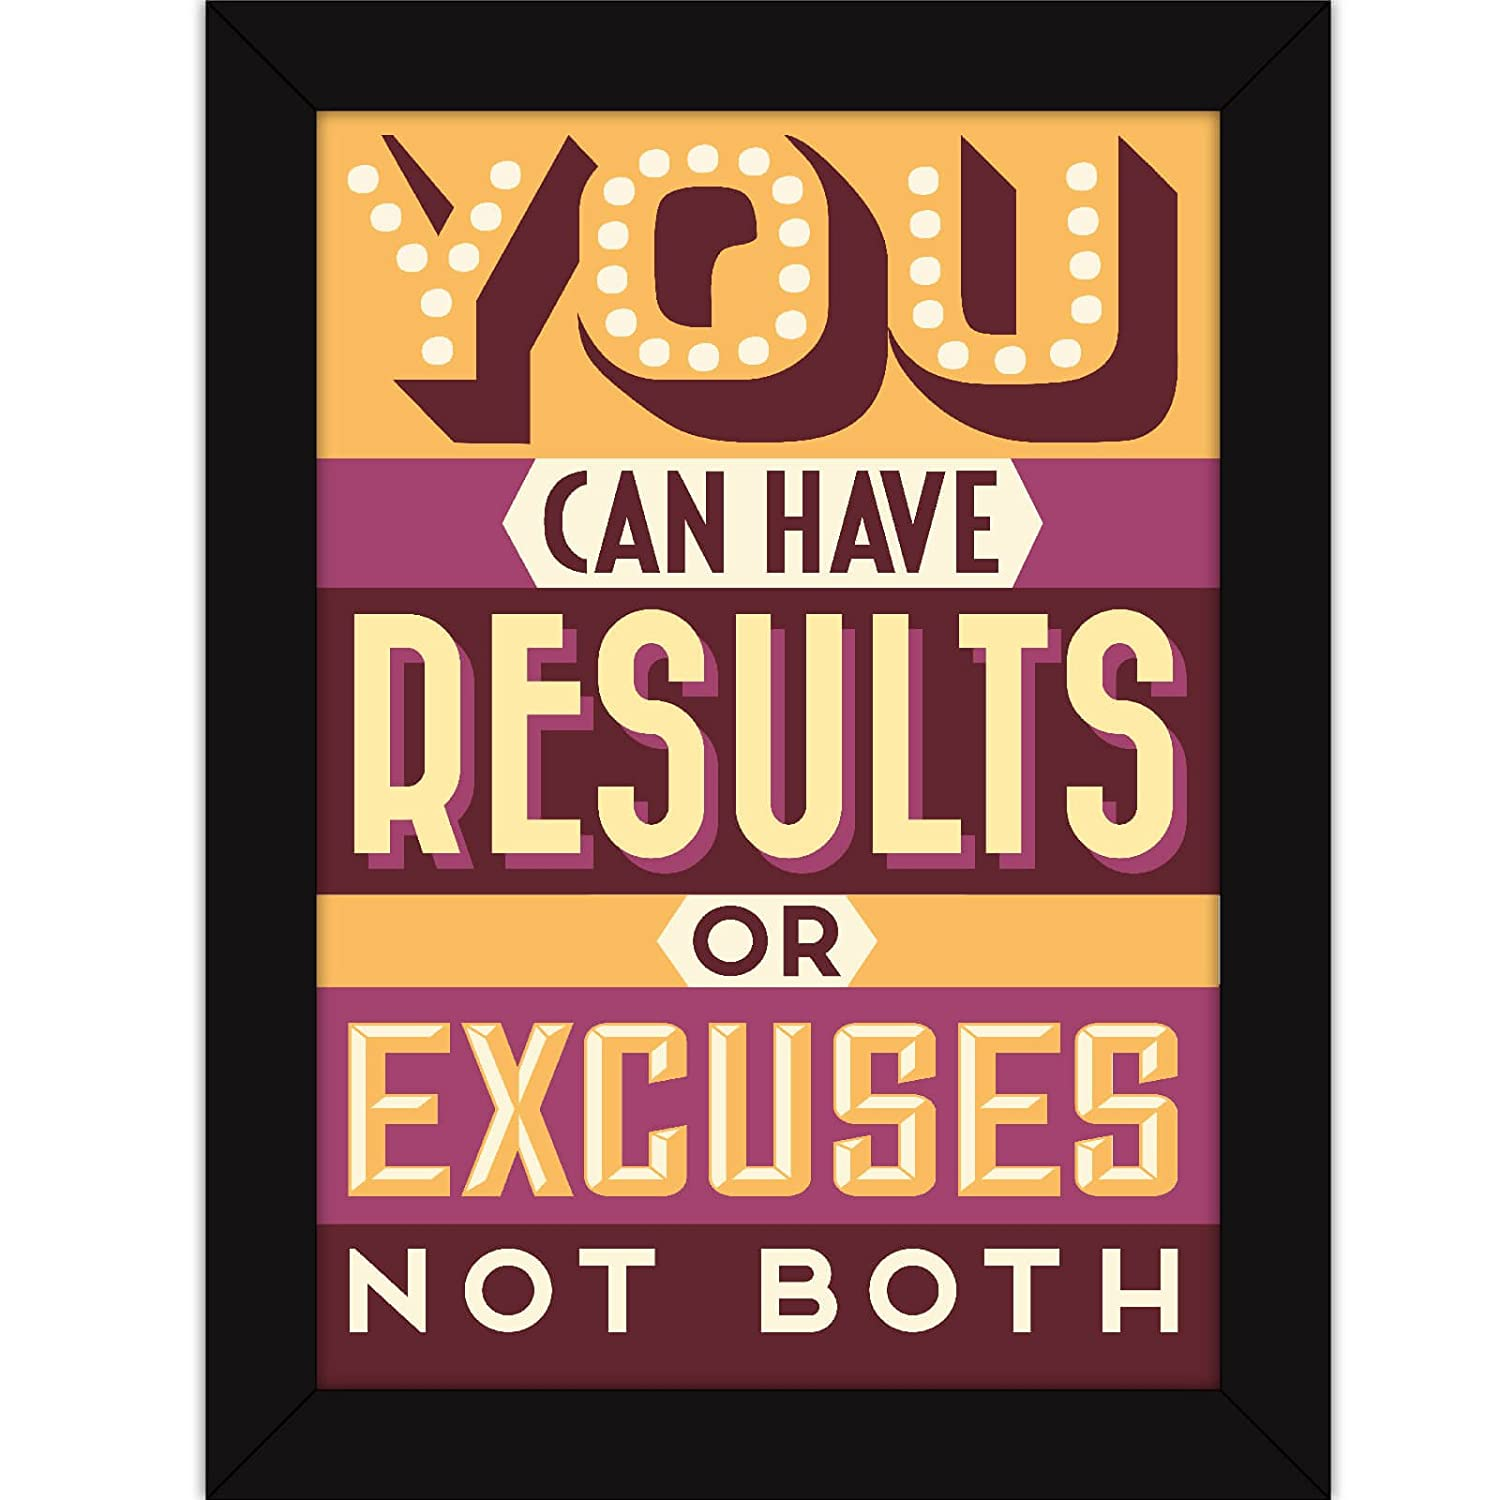 Motivational Poster With Frames For Office and Home - Gym Workout Quote - Results Or Excuses